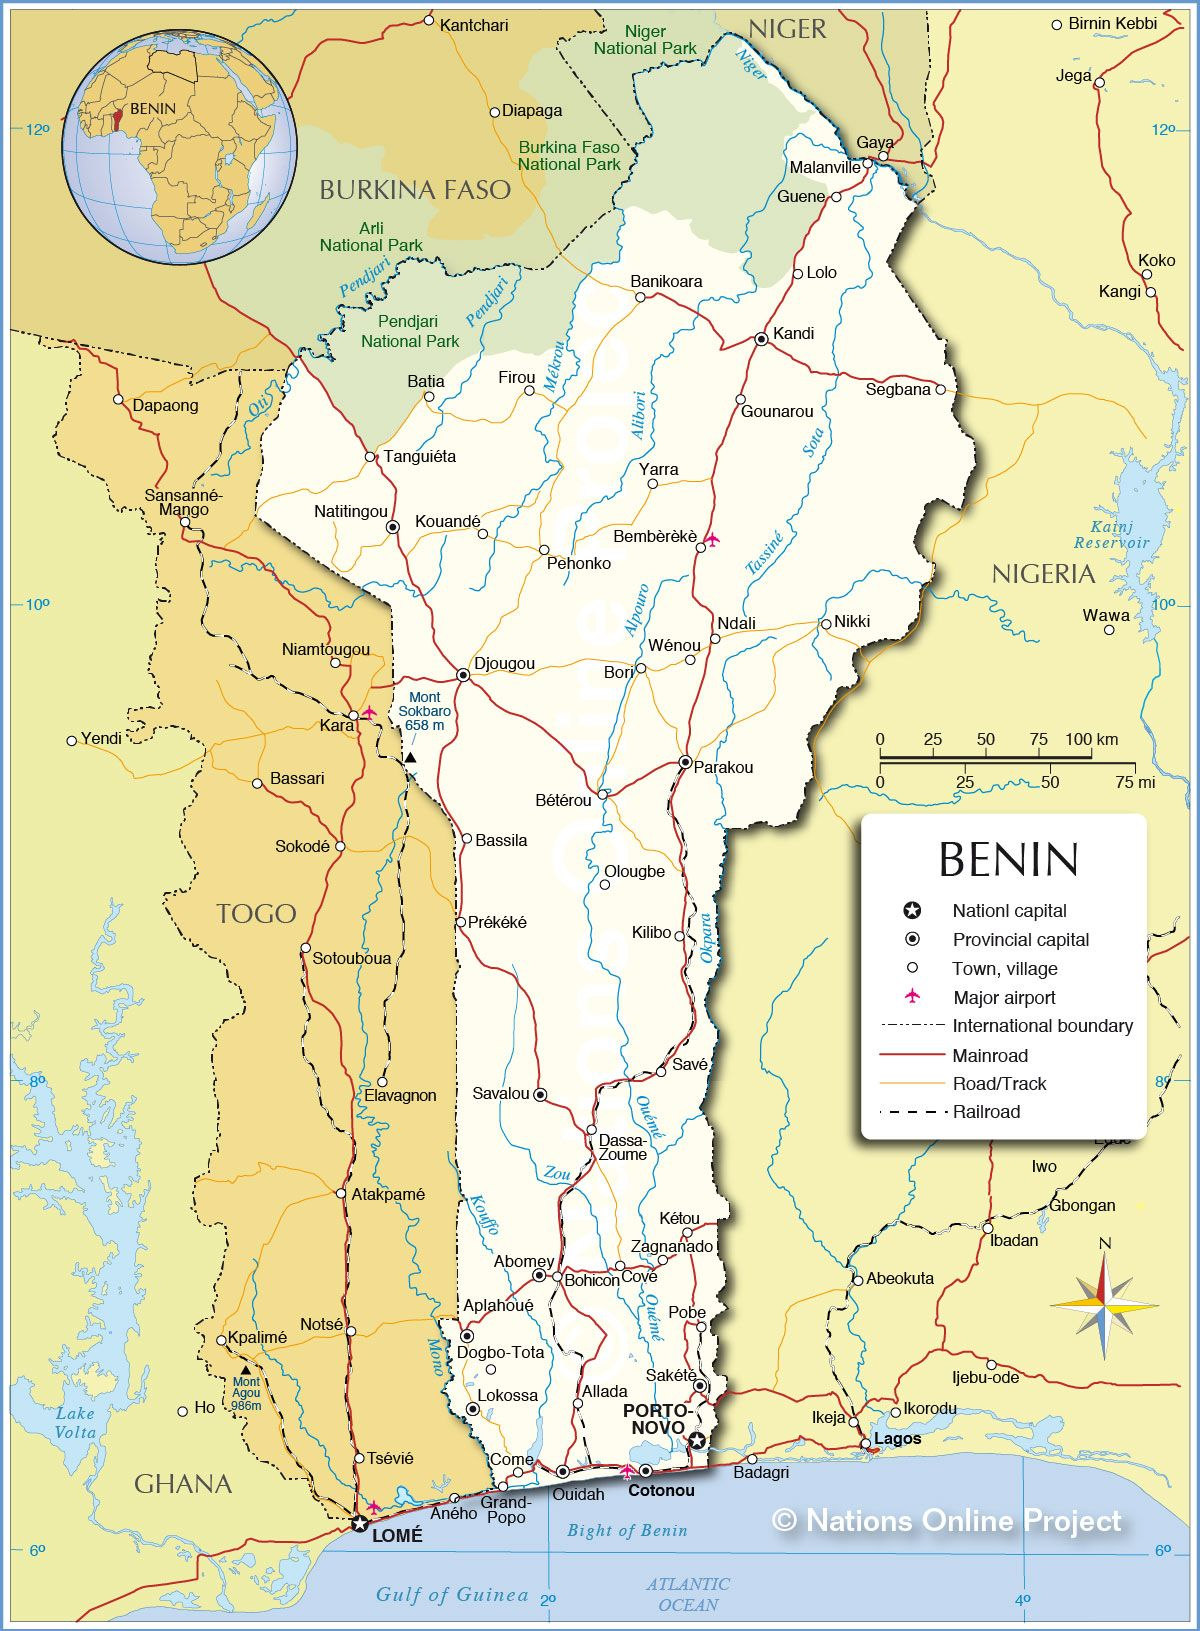 benin-political-map_You_are_free_to_use_this_map_for_educational_purposes__please_refer_to_the_Nations_Online_Project..jpg (1200×1631)